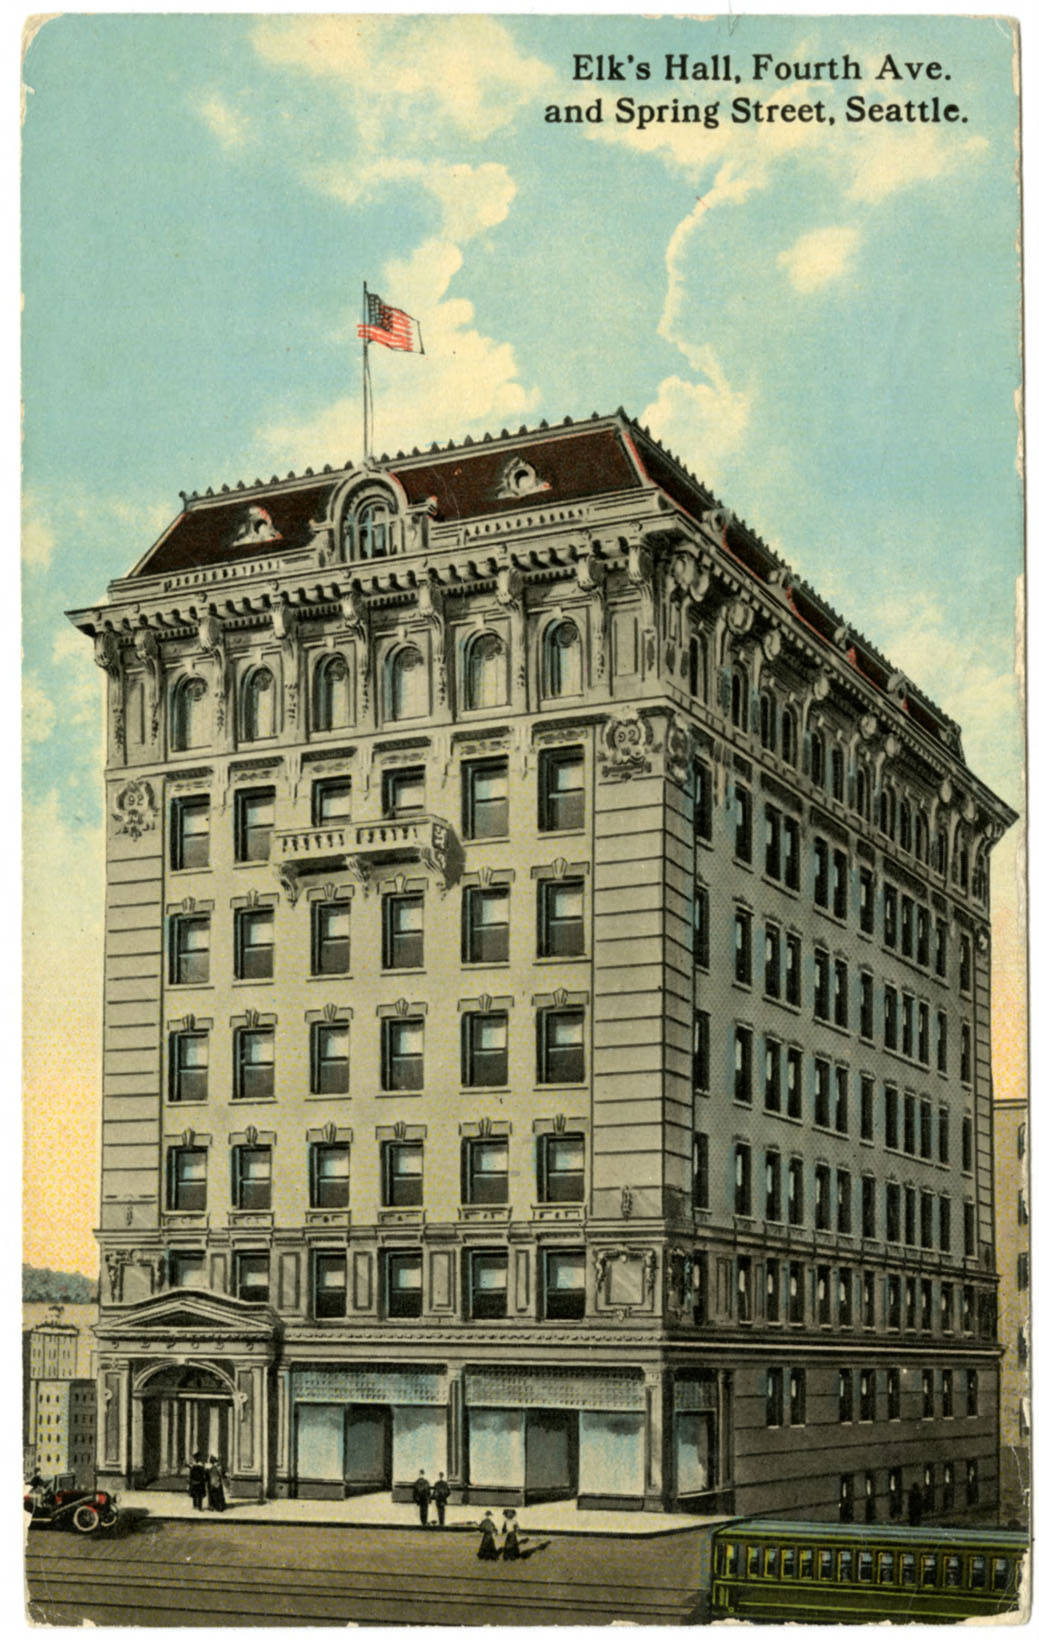 Elk's Hall at 4th Ave. and Spring St., ca. 1910